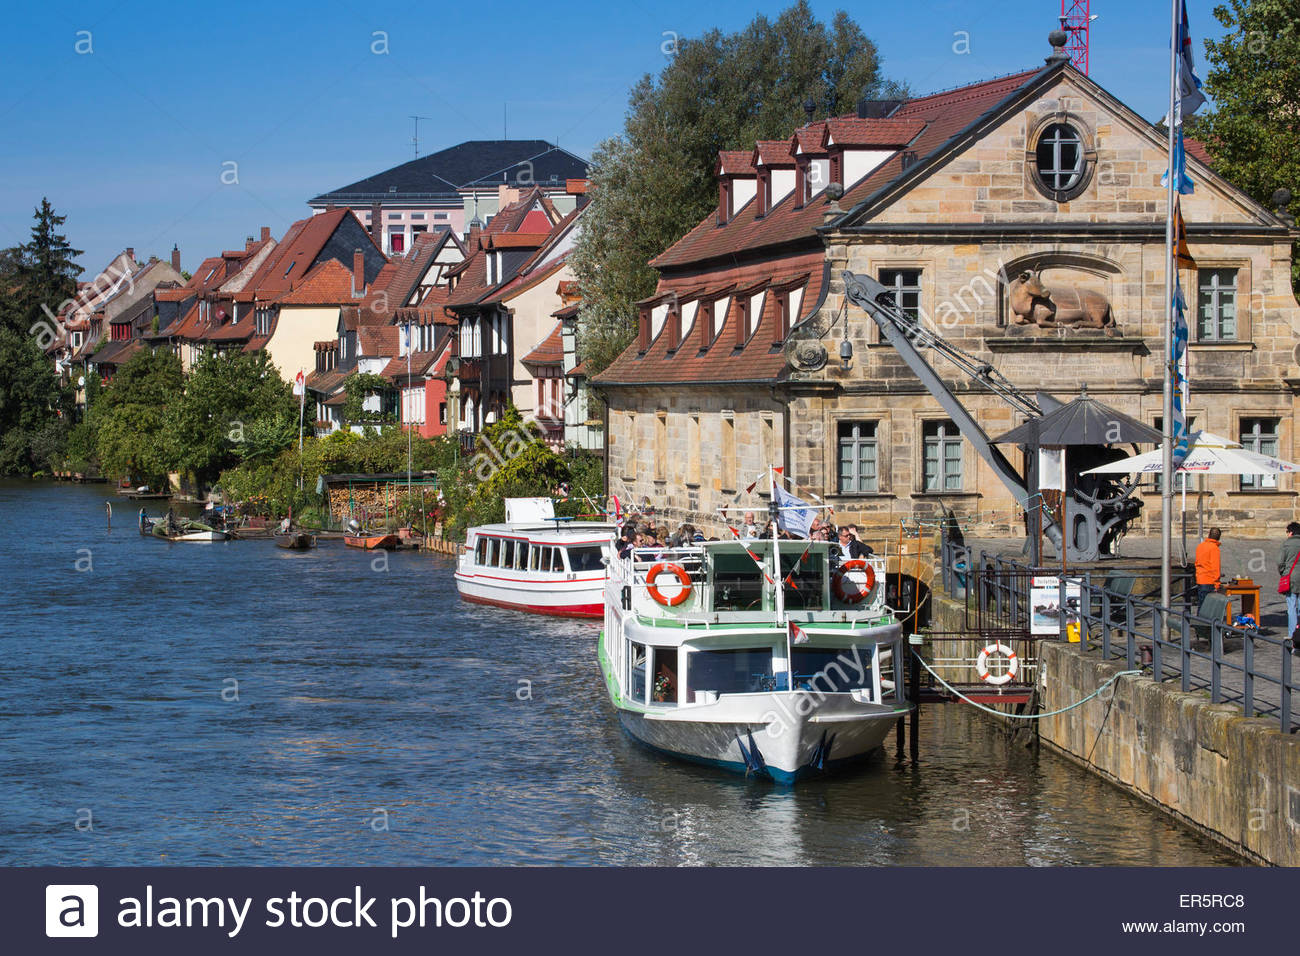 Sightseeing boat Christl and buildings of Klein Venedig Little Venice district alongside the left branch of the - Stock Image